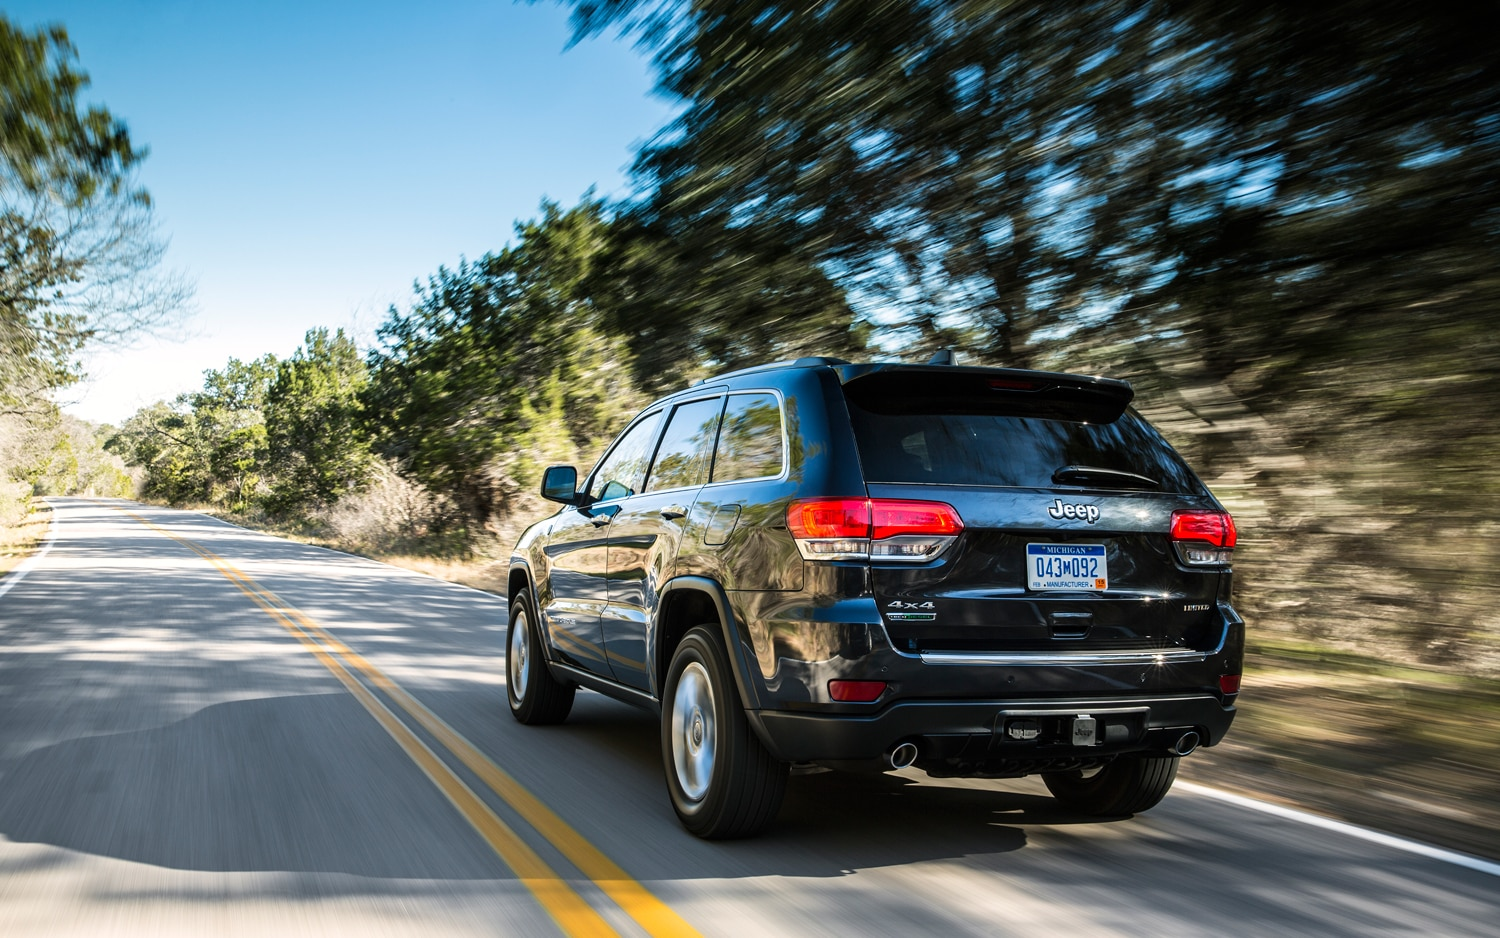 2014 Jeep Grand Cherokee Diesel Rear